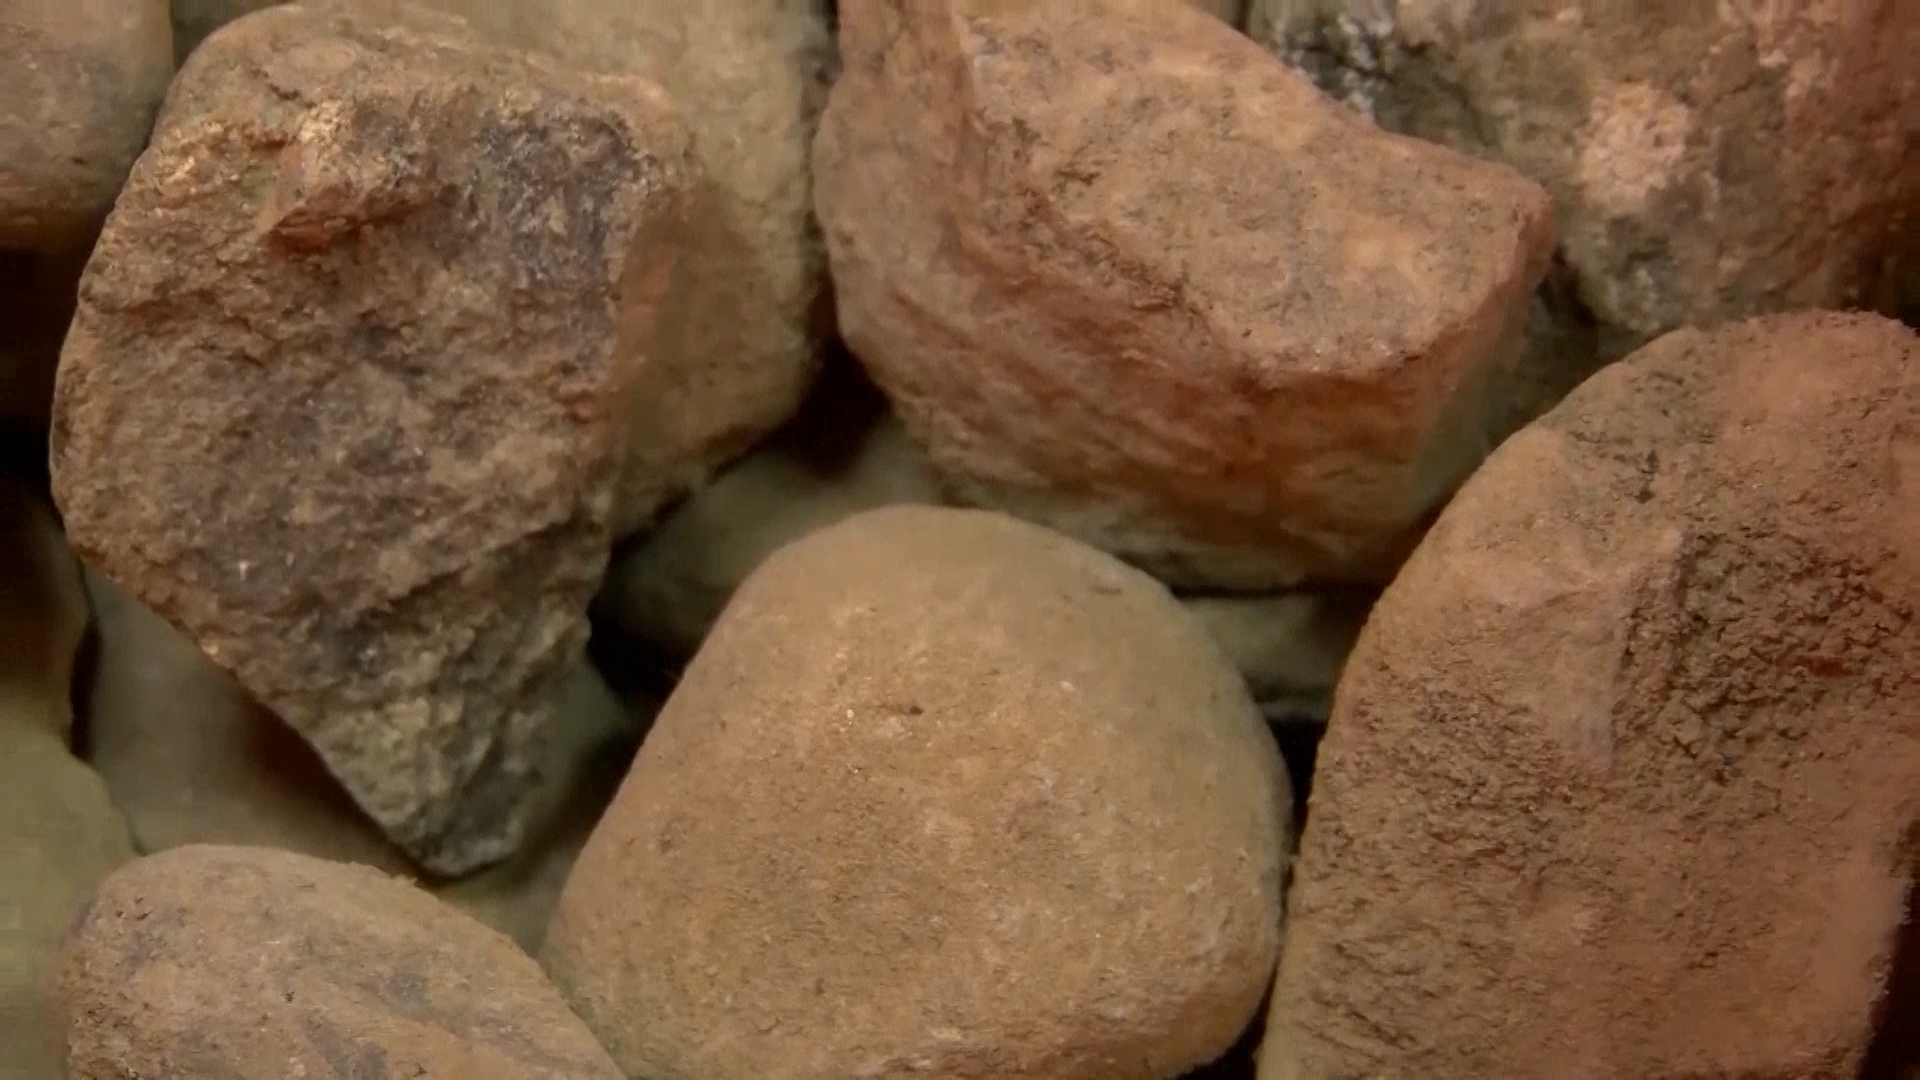 Pa. District Arming Students, Teachers With Buckets of Rocks - NBC 5 ...